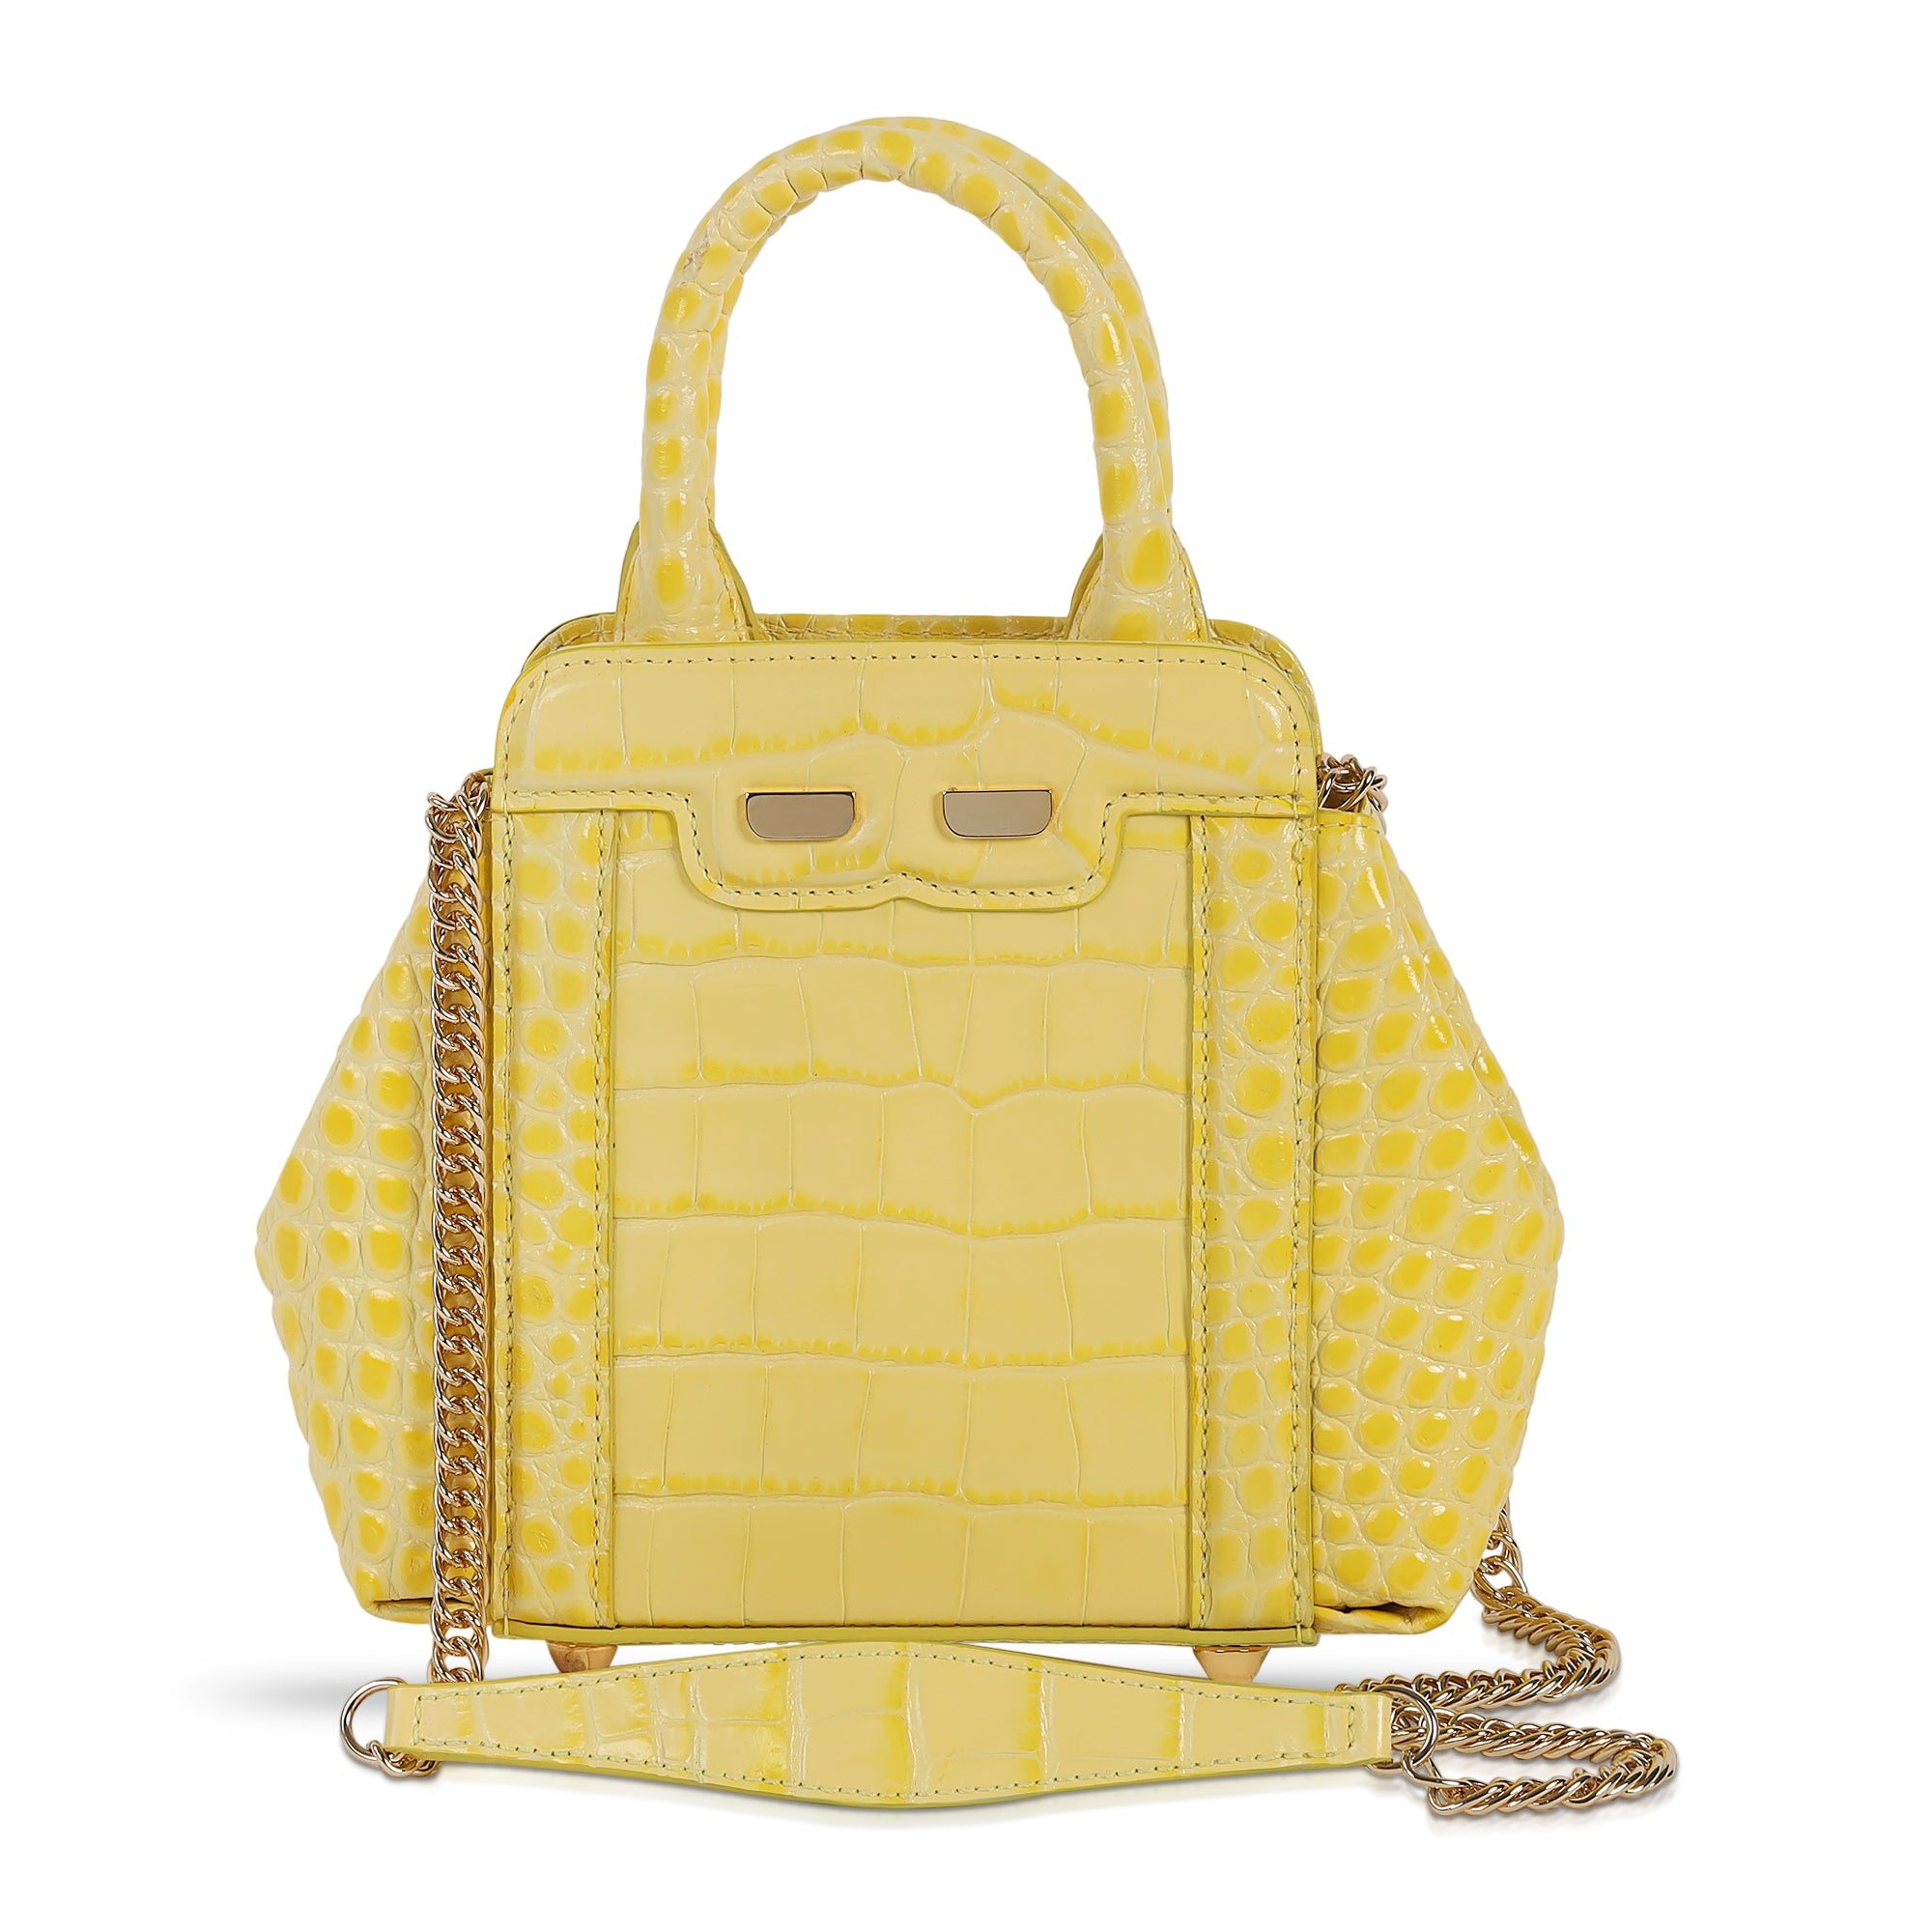 Mini Nott in Giallo Croc